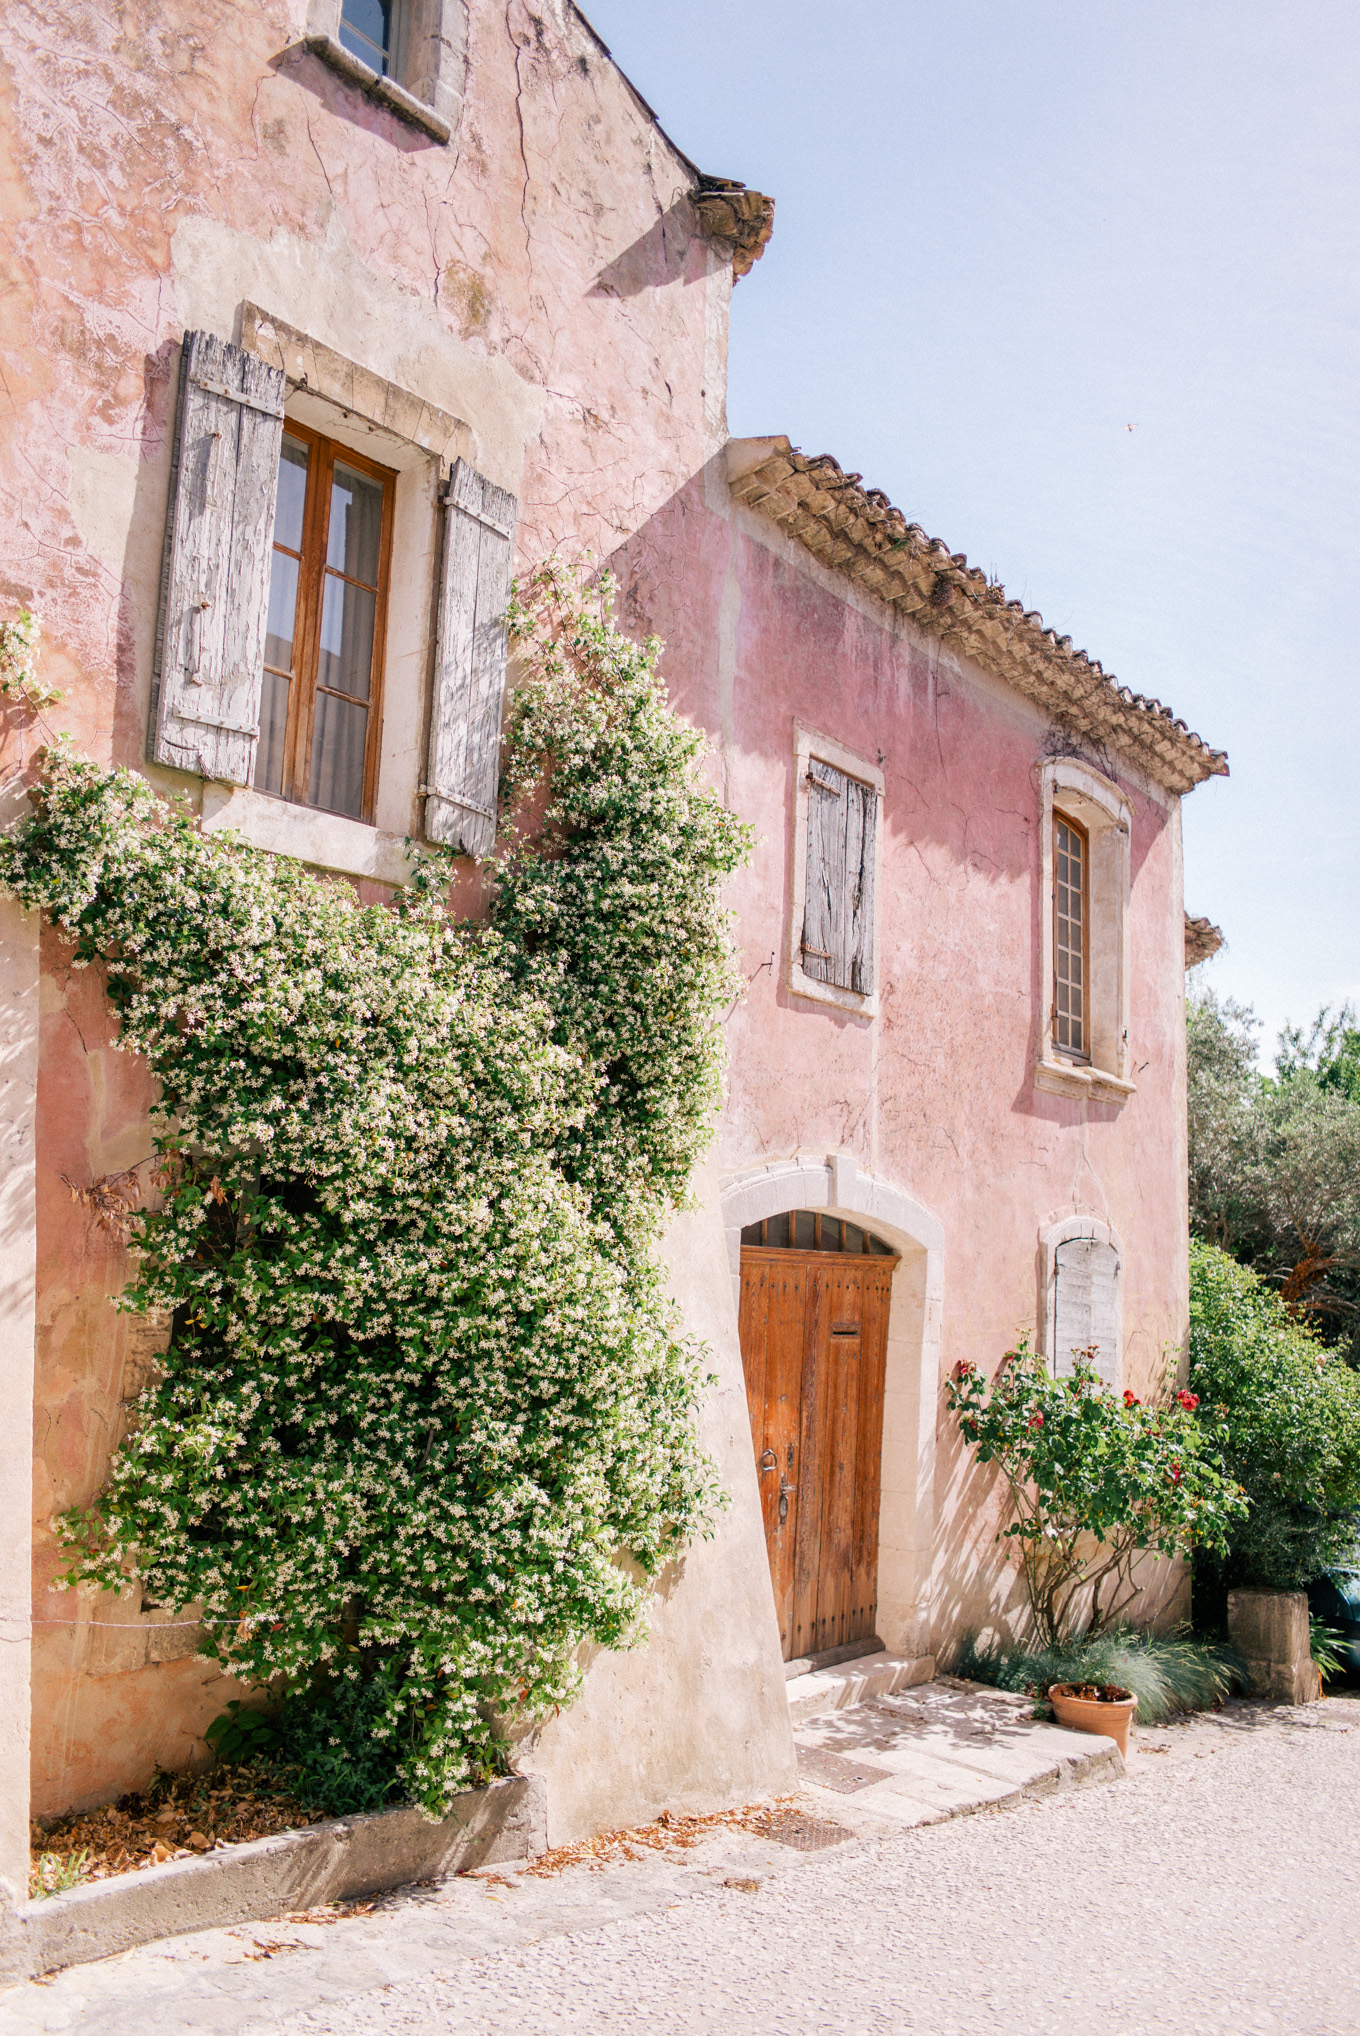 gmg-provence-france-villages-1008186